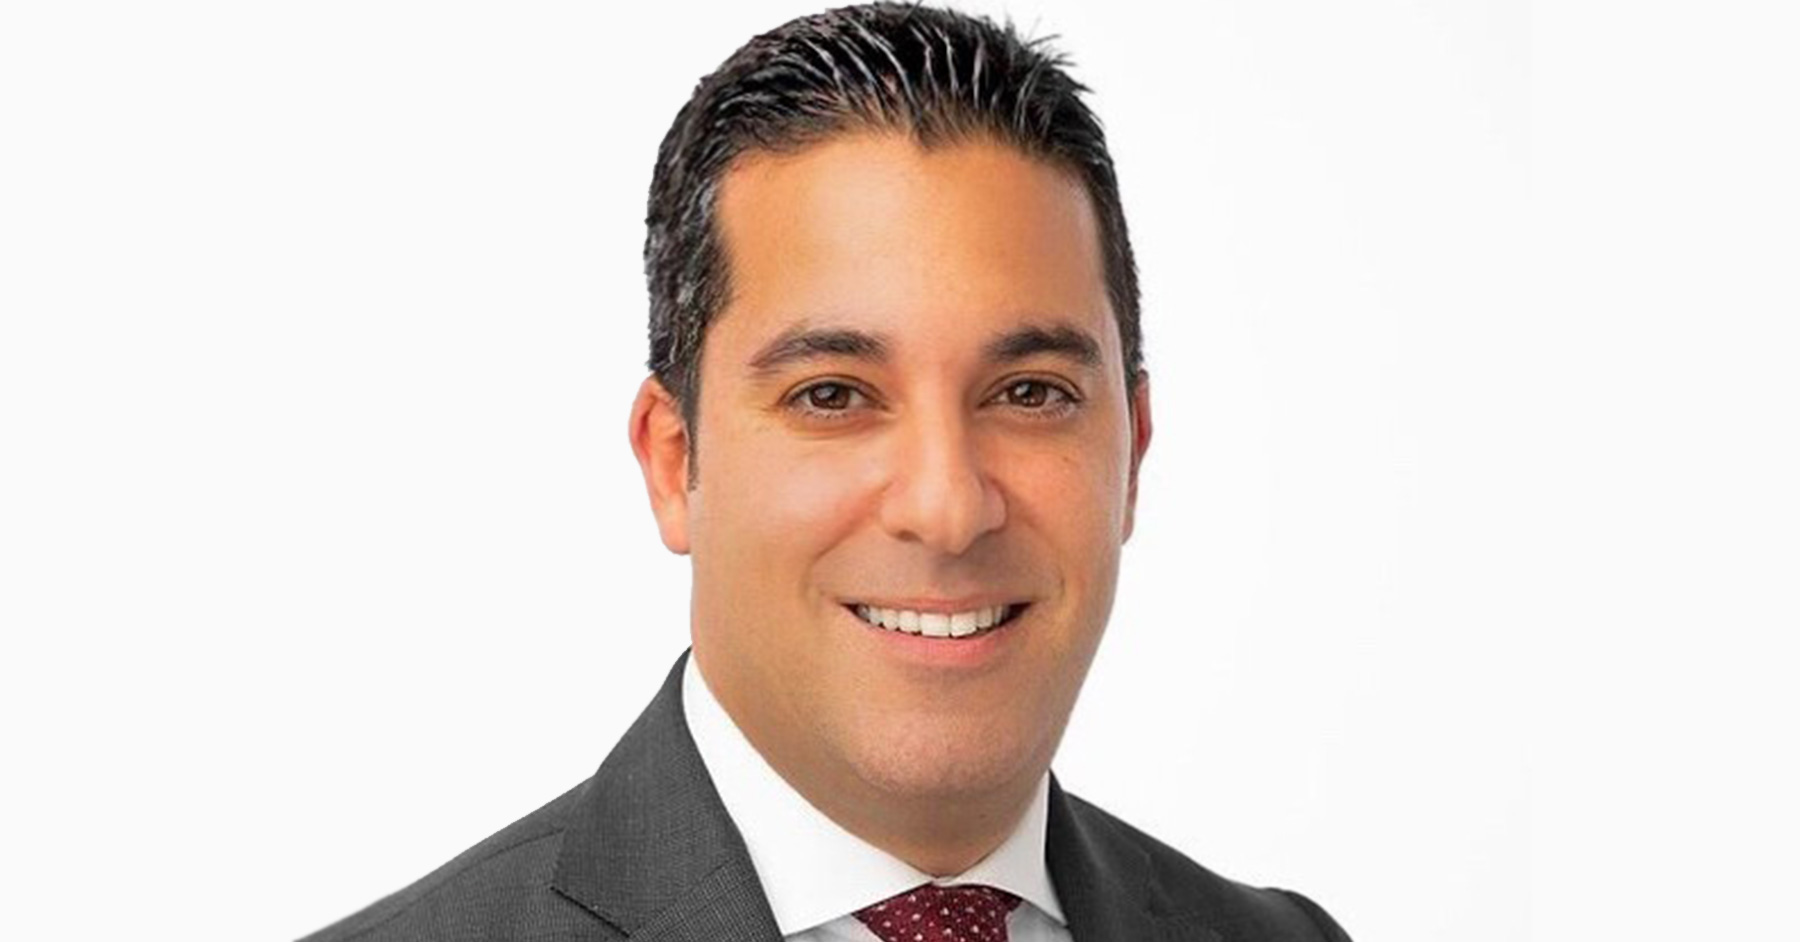 #108: Hussein Wehbe Chief Executive Officer of fetchr Featured Image